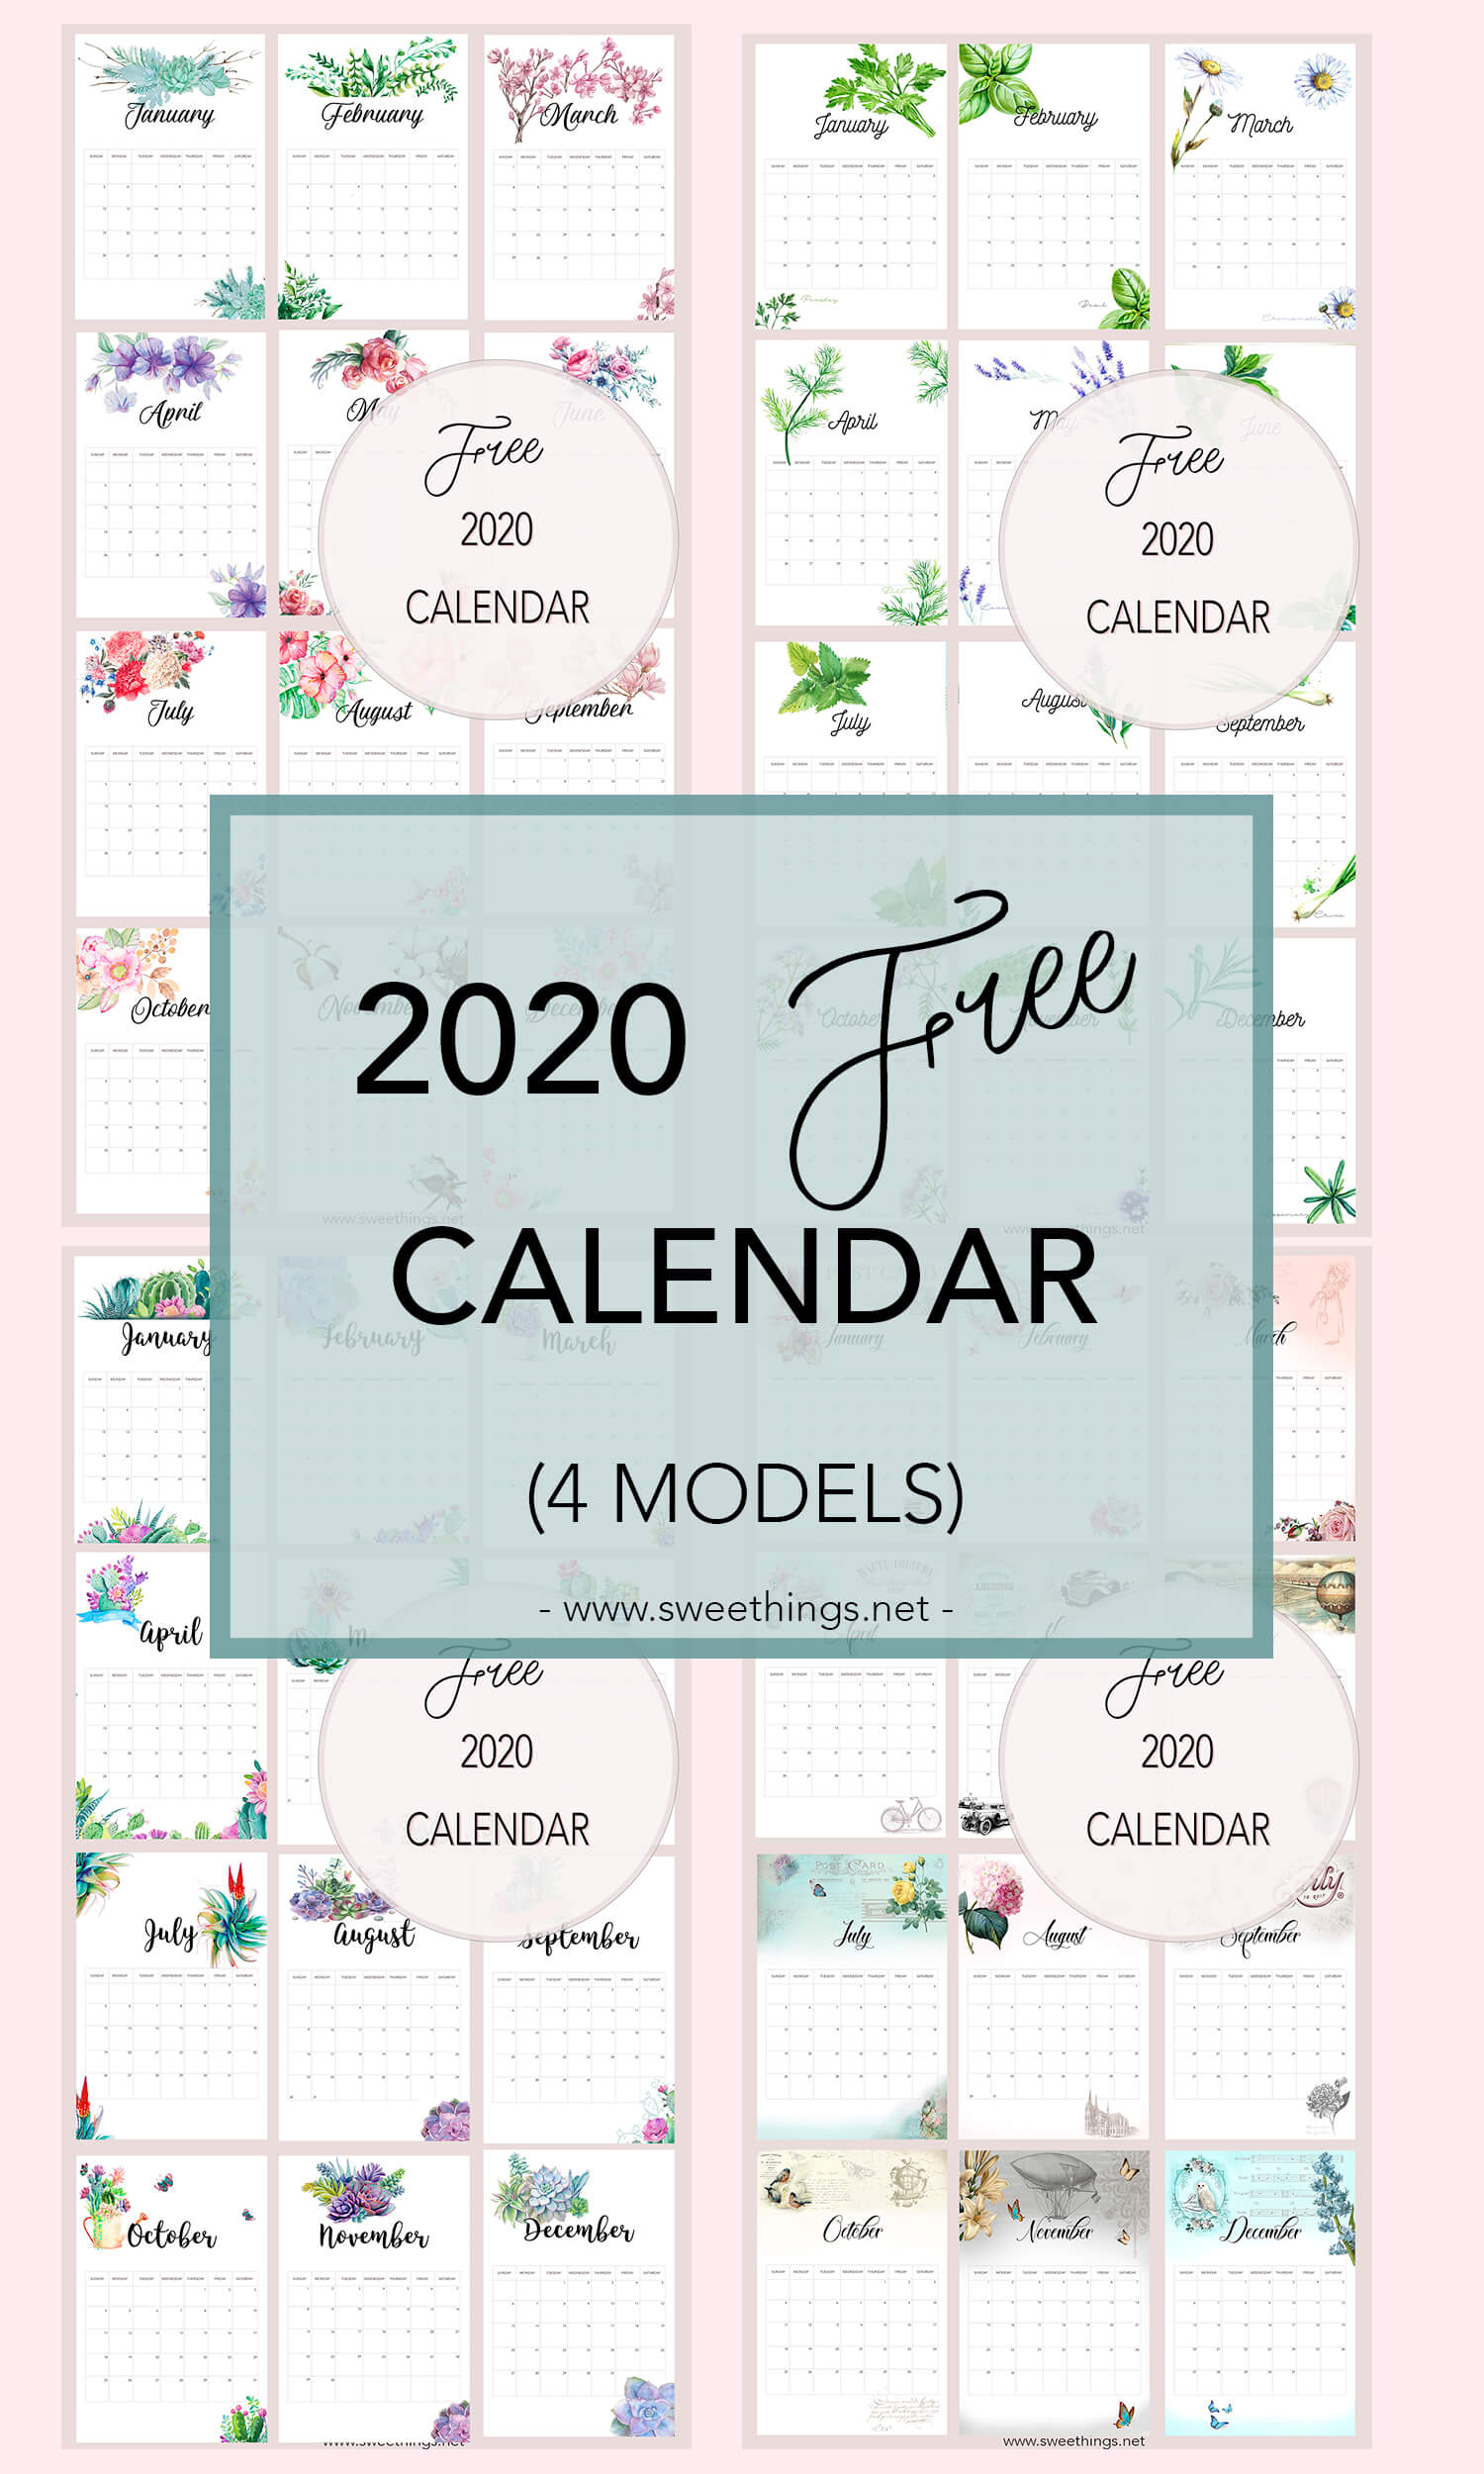 Free 2020 calendar · Via www.sweethings.net